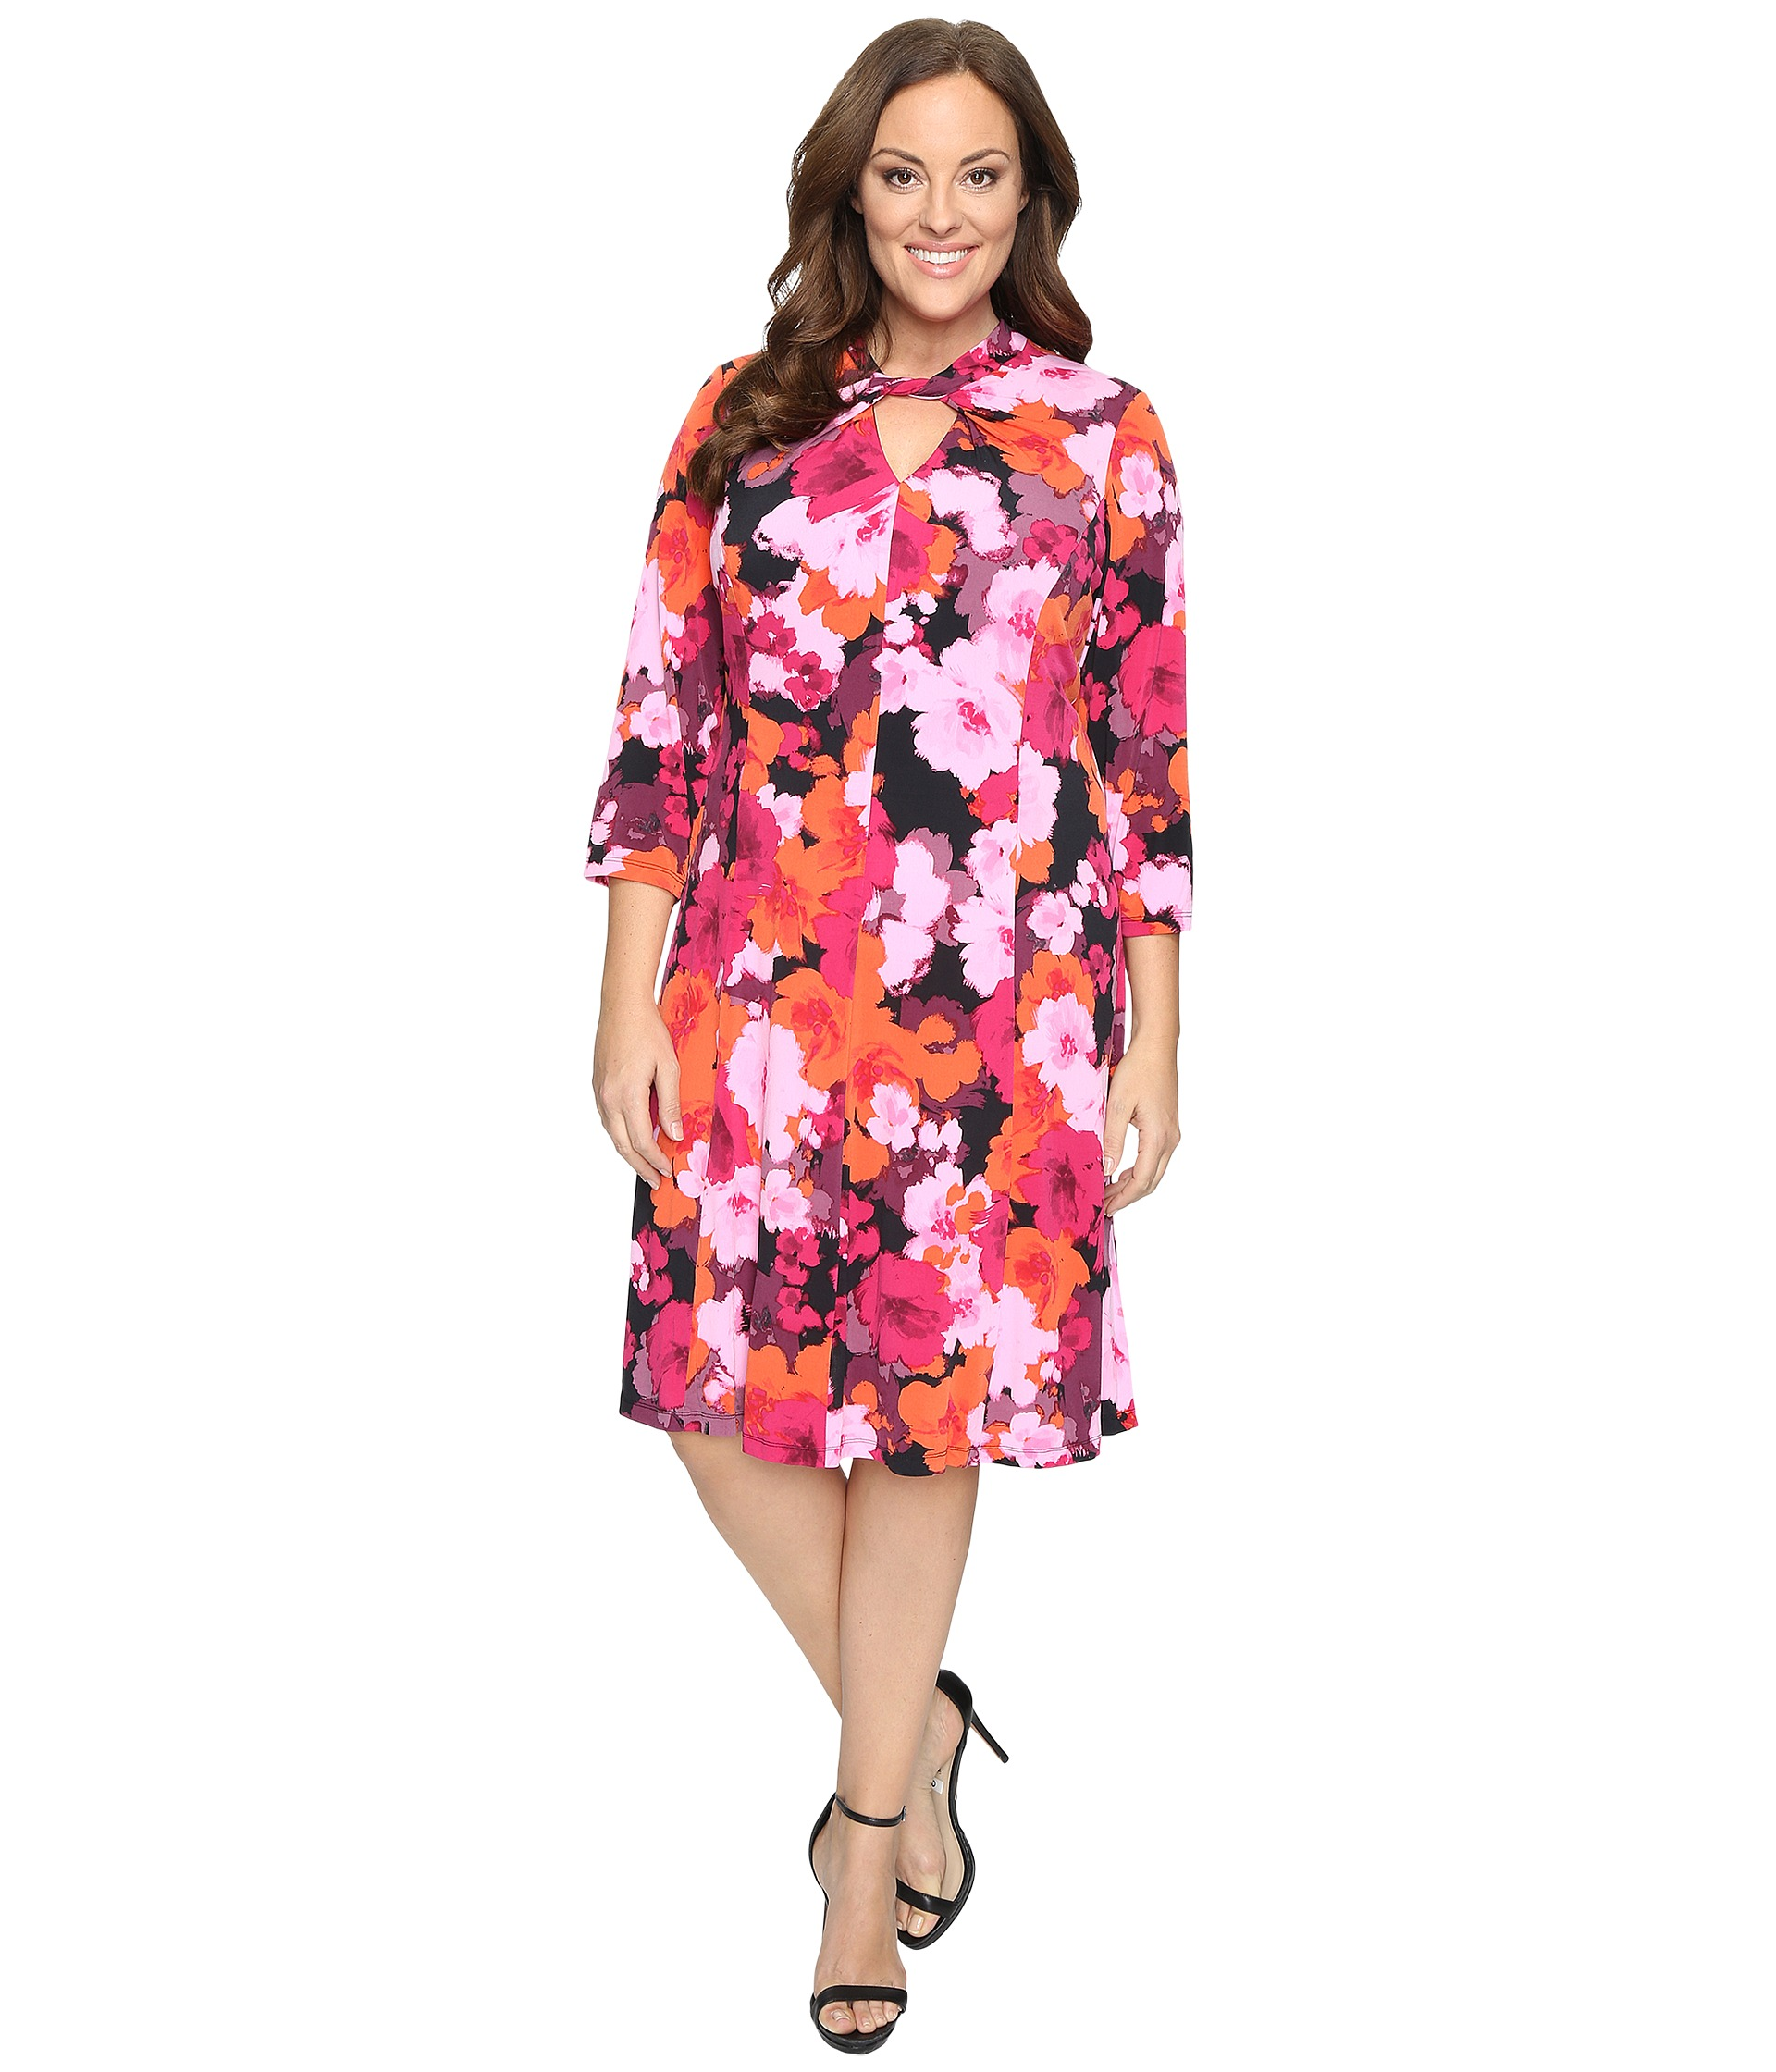 K g plus size dresses 30 35